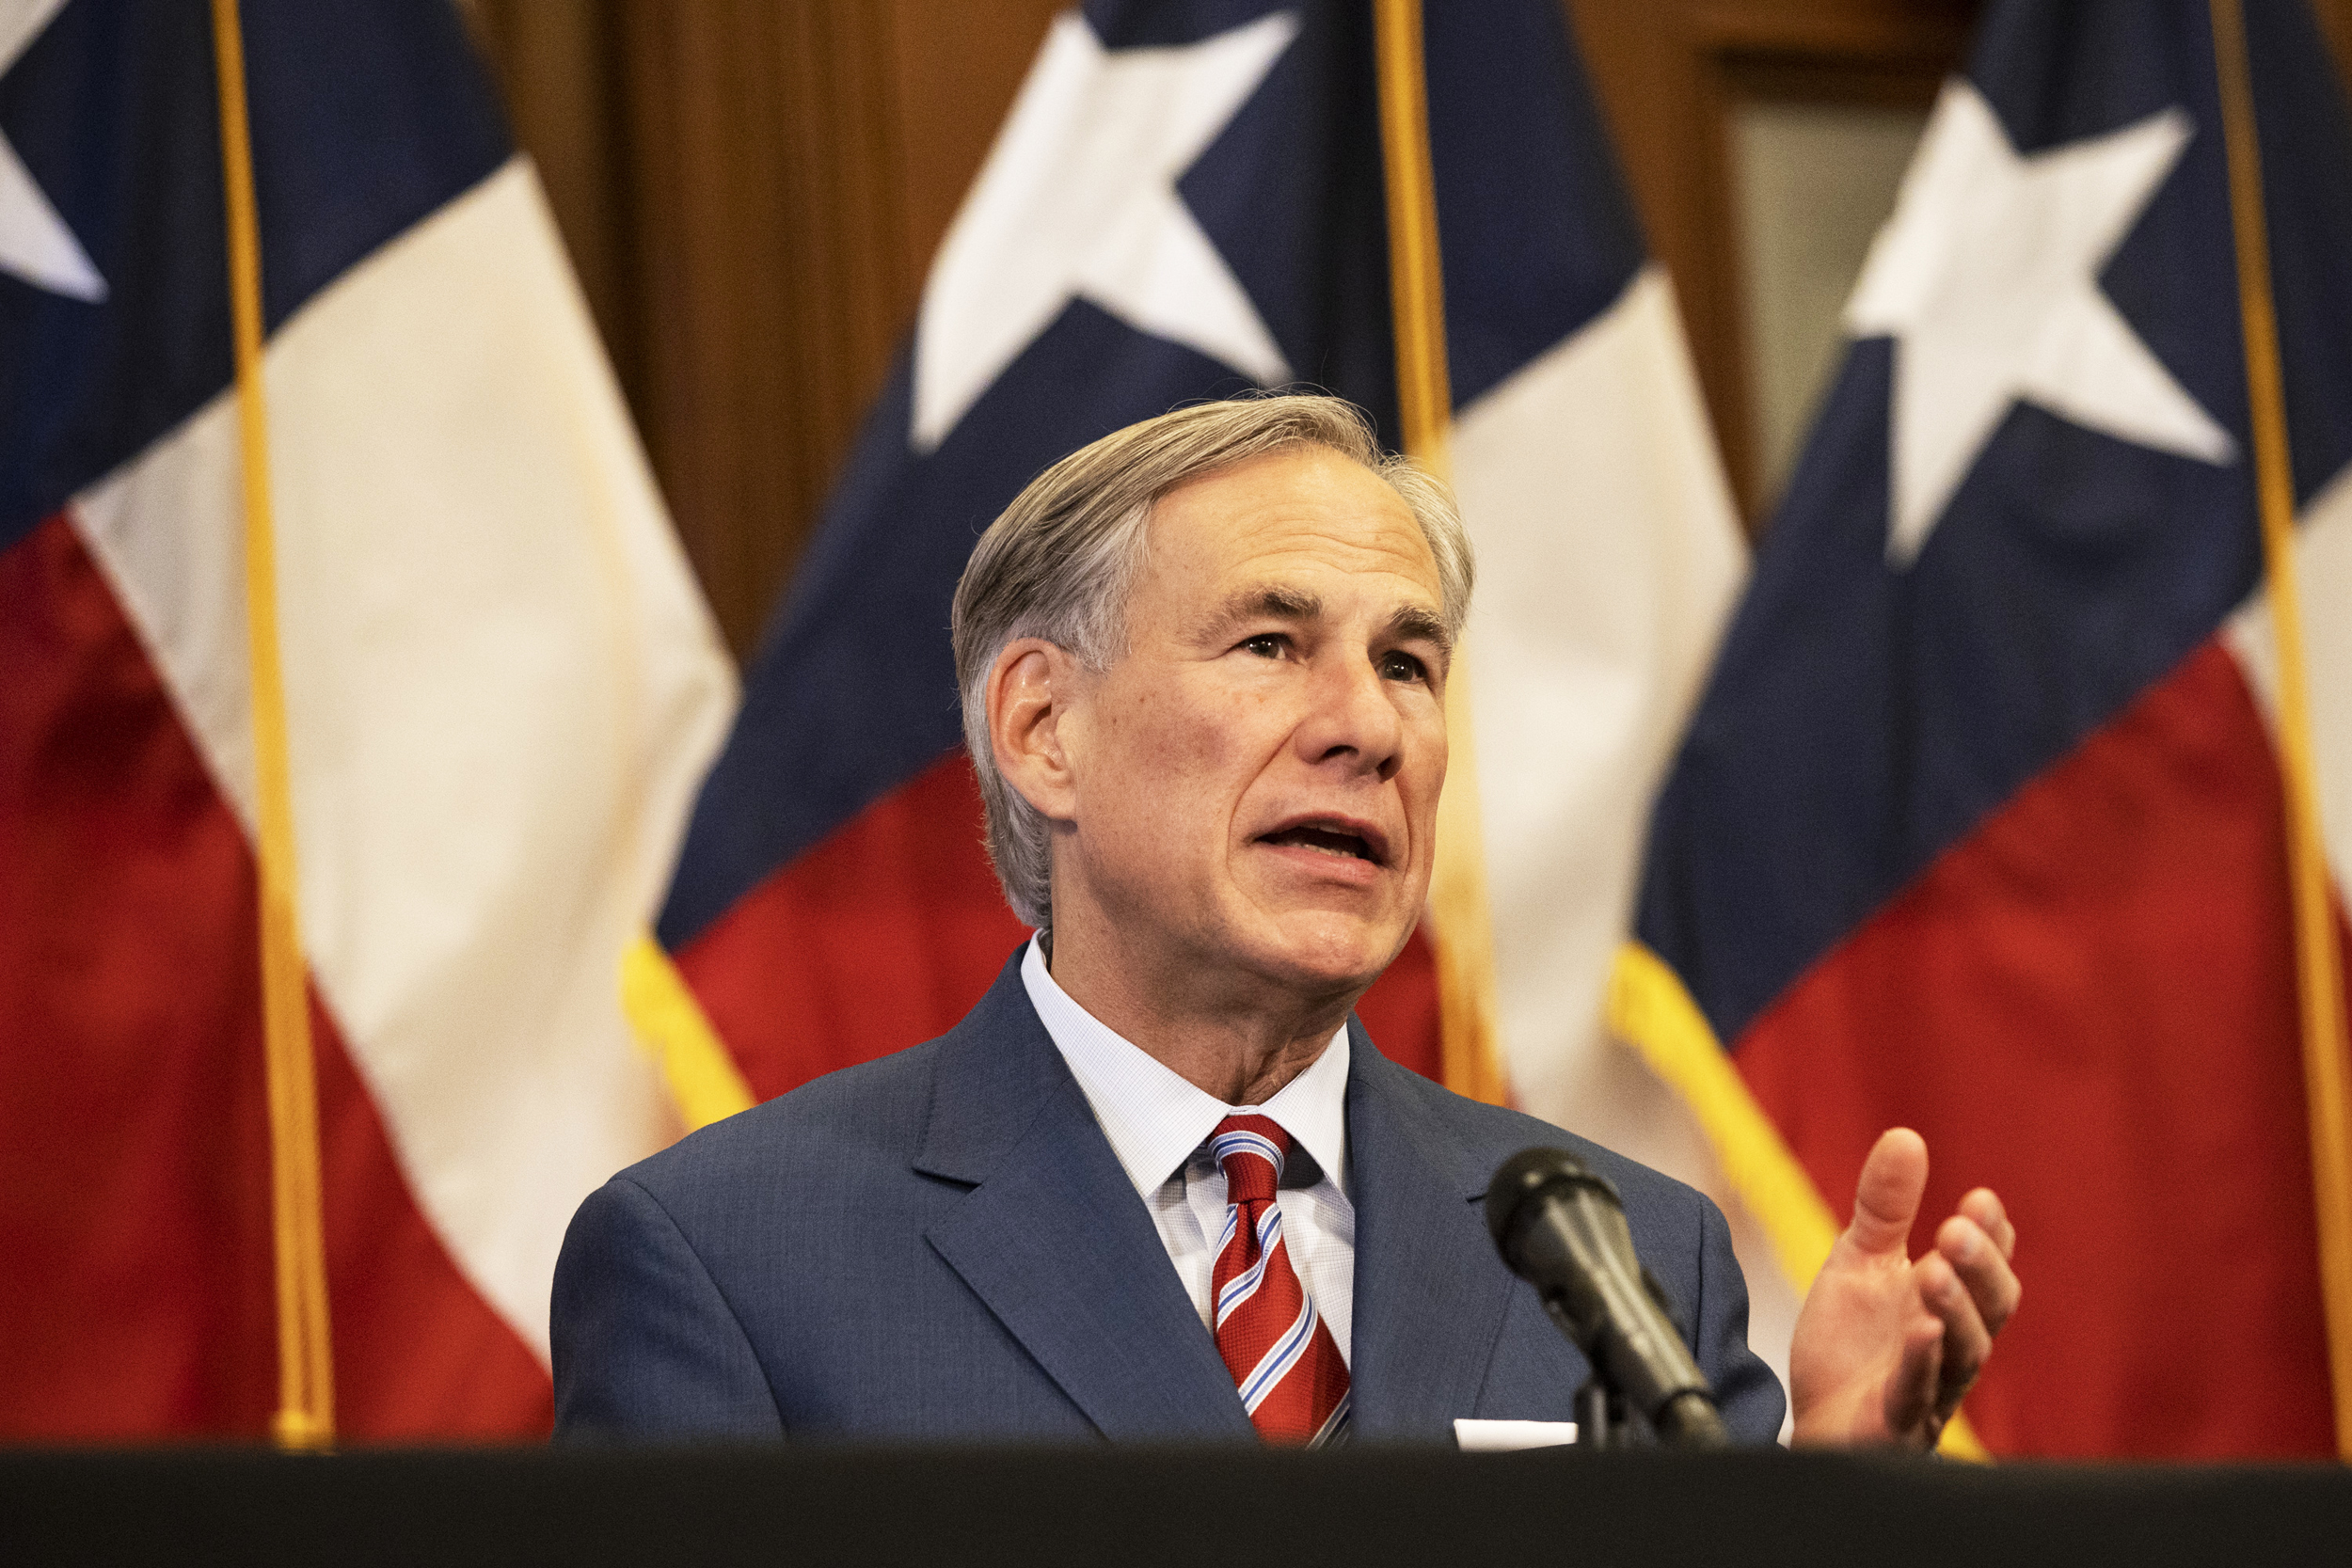 Texas Gov. Abbott signs sweeping voting restrictions bill into law